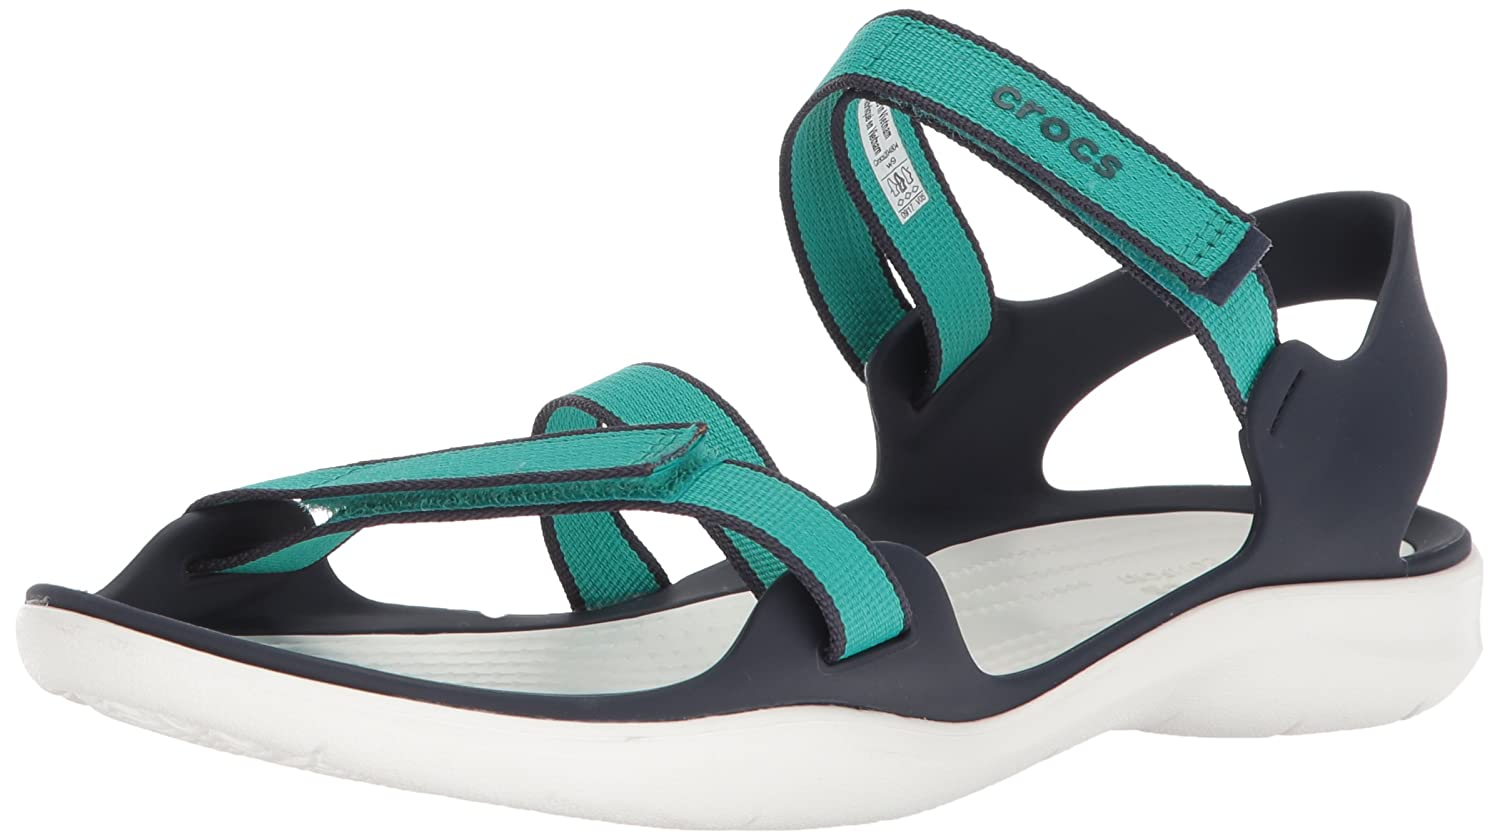 Crocs Swiftwater Webbing Sandales Damens Tropical Teal 2018 2018 Teal Sandalen Tropical Teal e4be11